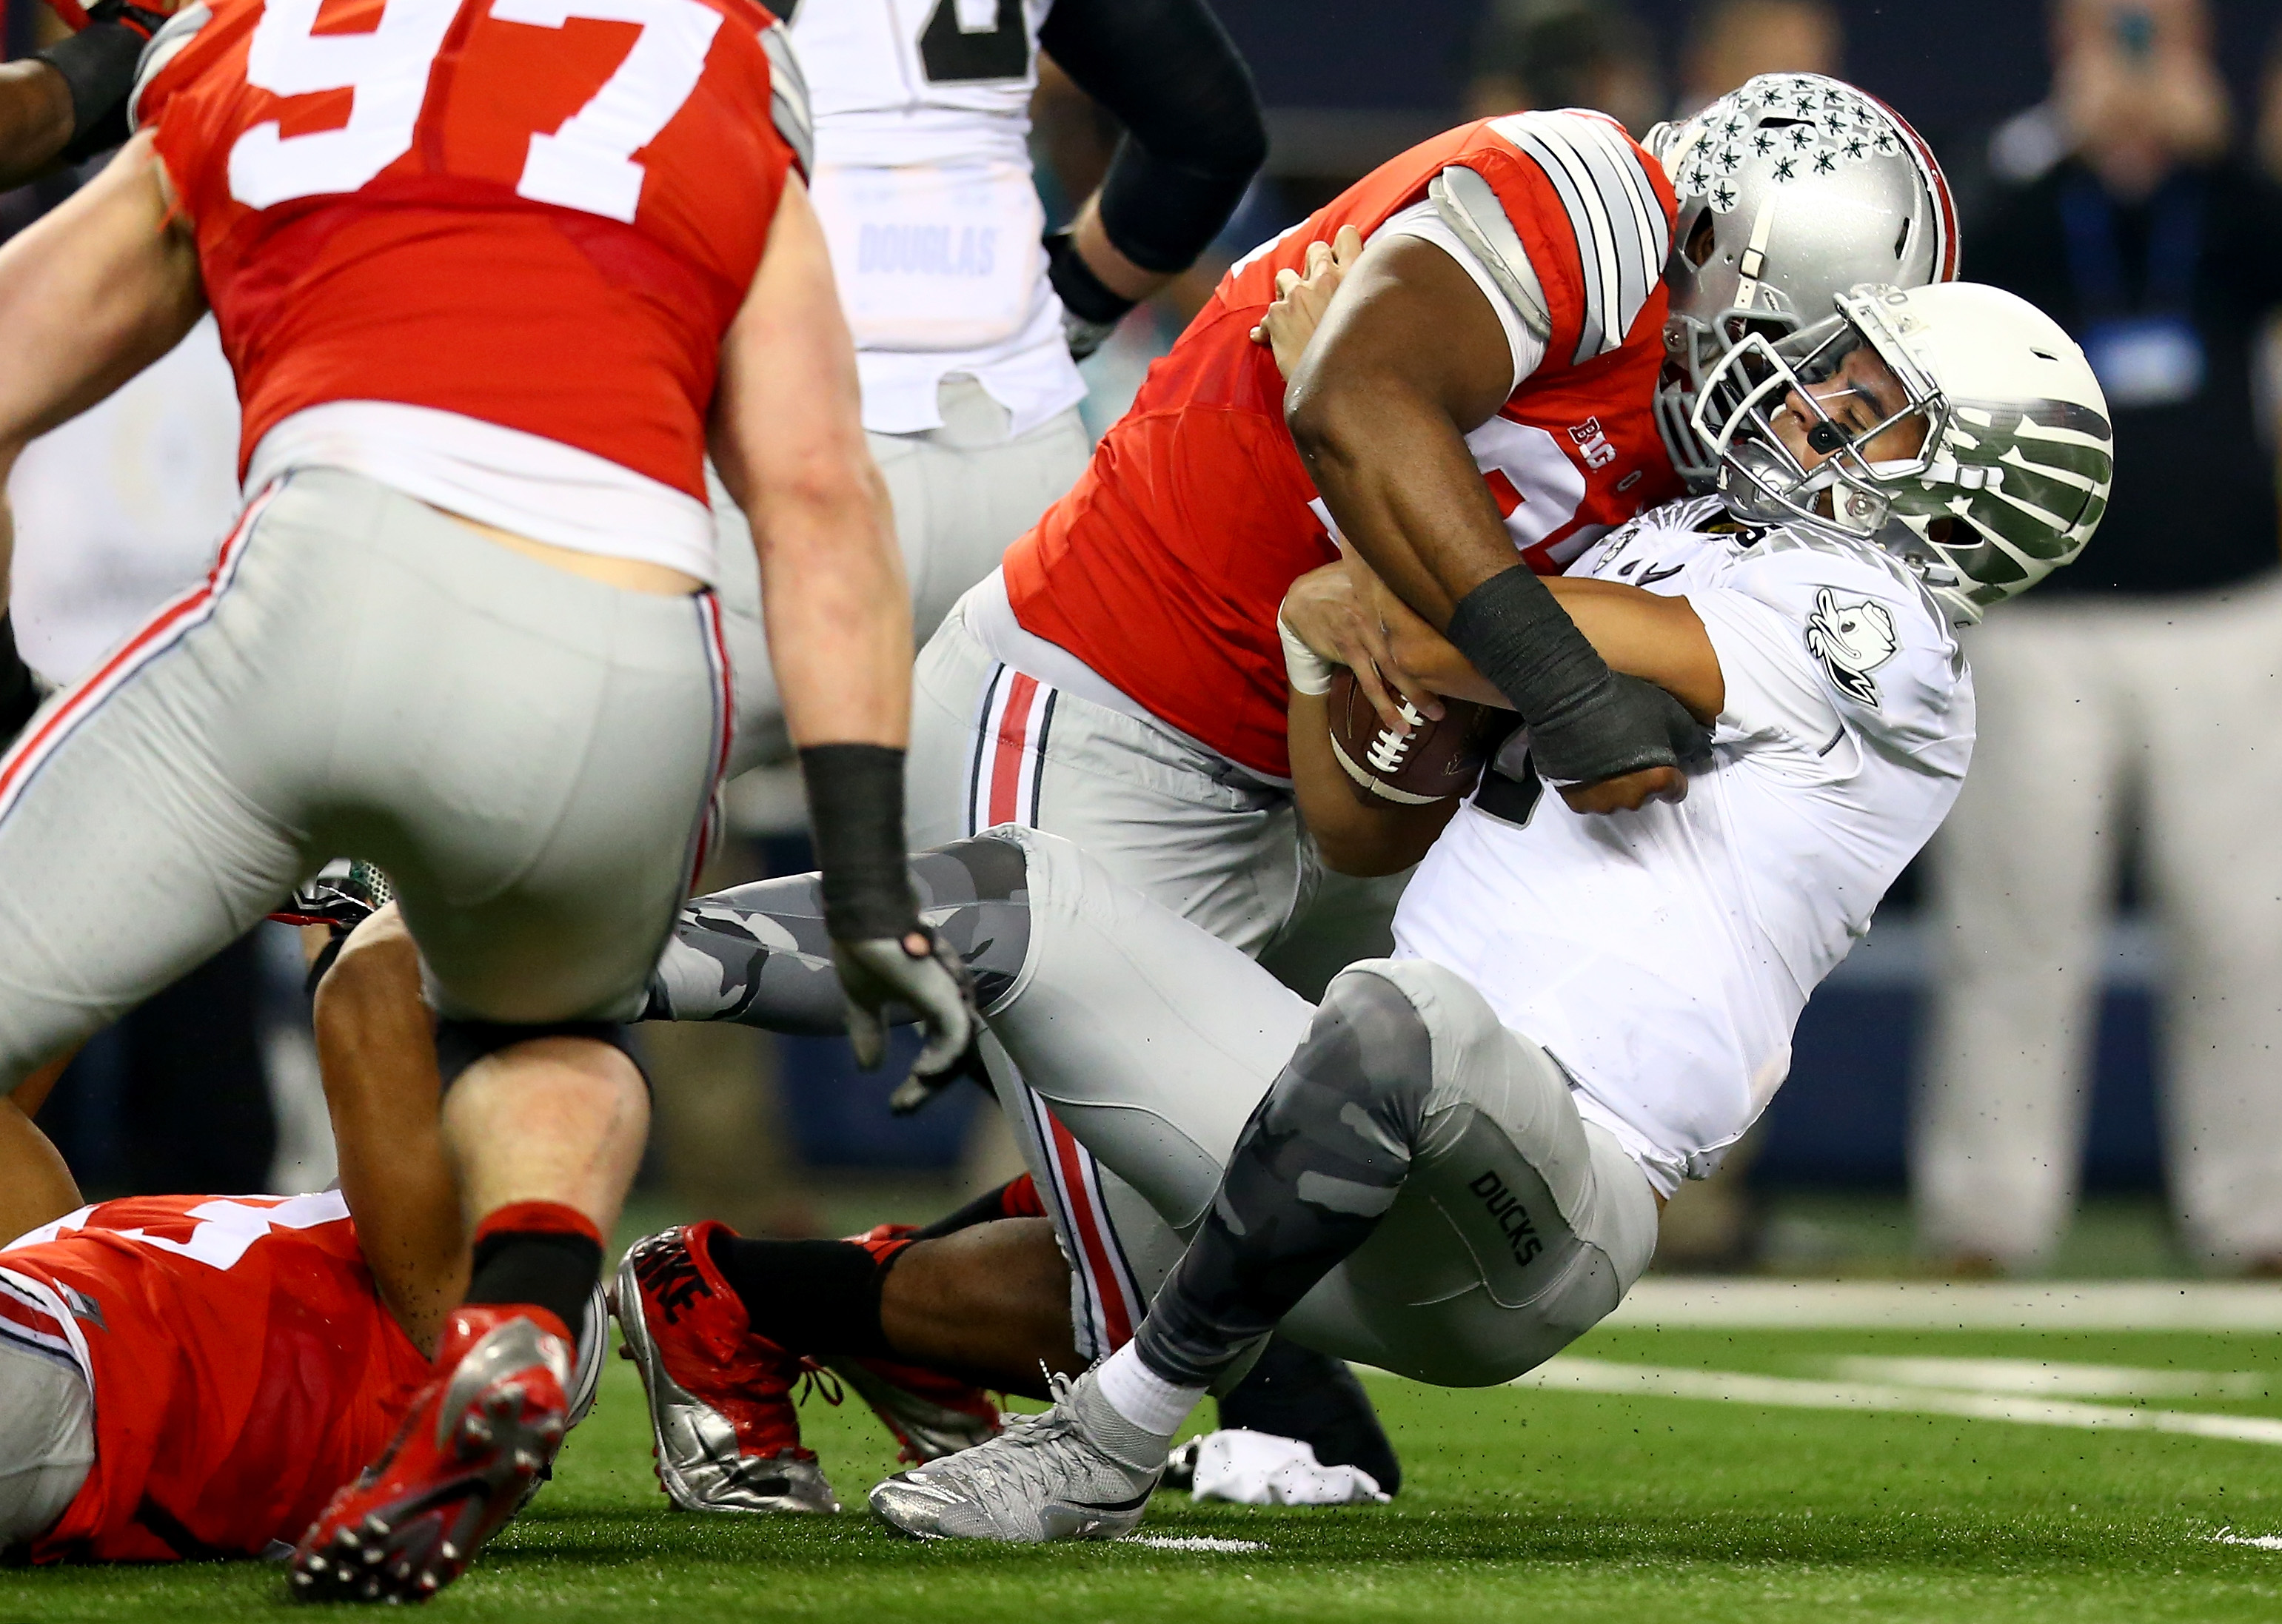 Defensive lineman Adolphus Washington of Ohio State sacks Marcus Mariota of Oregon in the second quarter during the 2015 College Football Playoff National Championship Game.  (Getty Images)